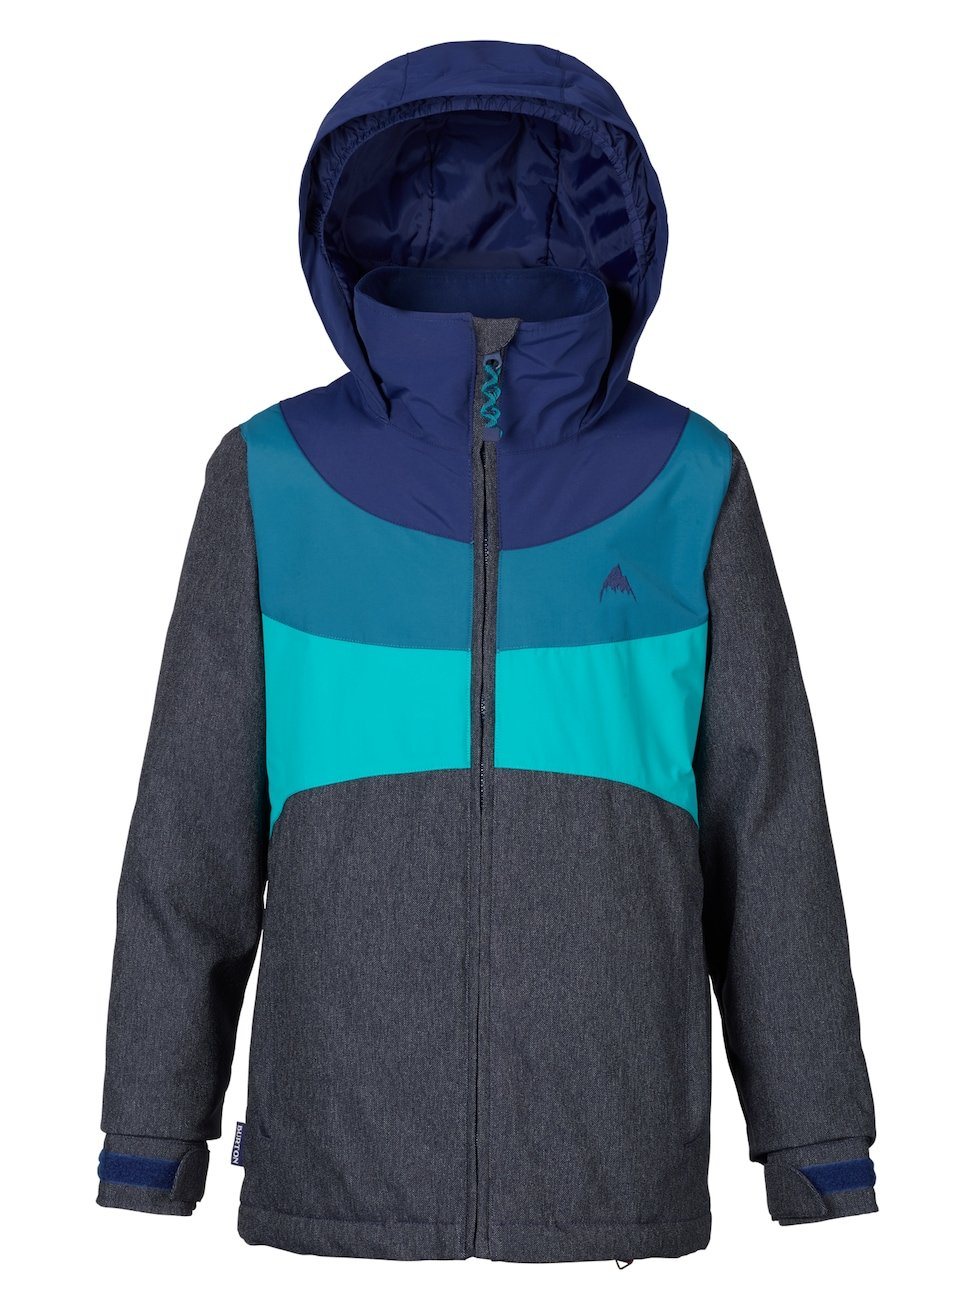 Burton Girls Youth Hart Snow Jacket Denim/Spellbound/Jaded Size Small by BURTON NUTRITION